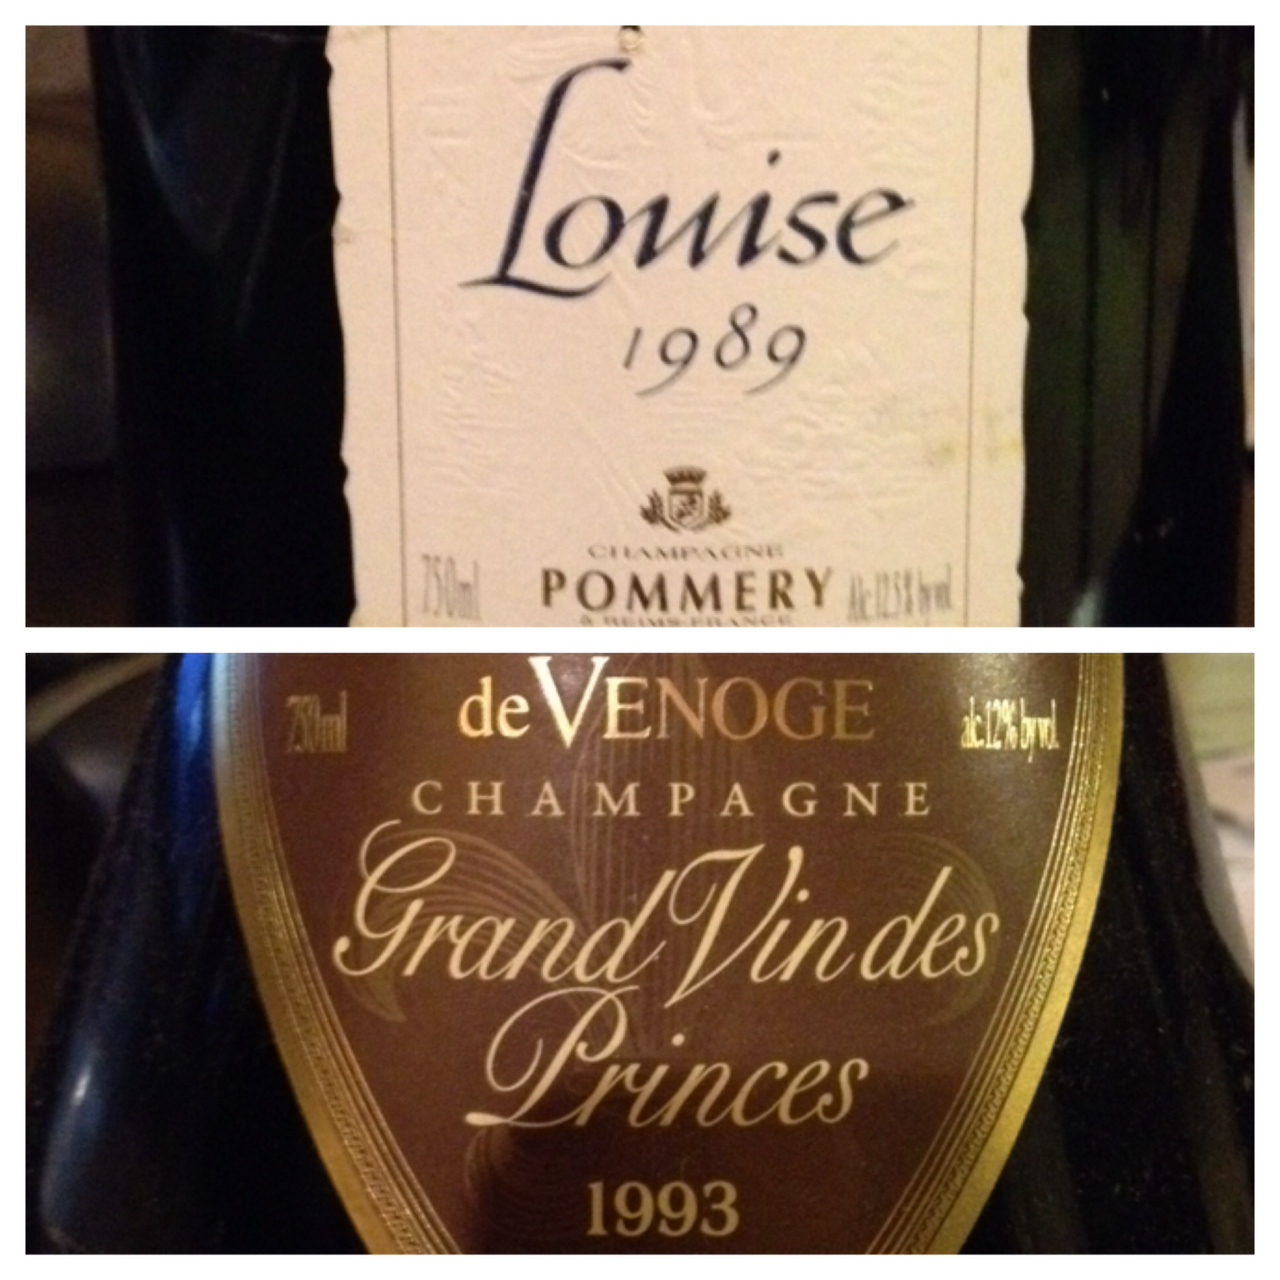 Pommery Louie 1989 was rated 95 pts & De Venoge 1993 was rated 90+ pts